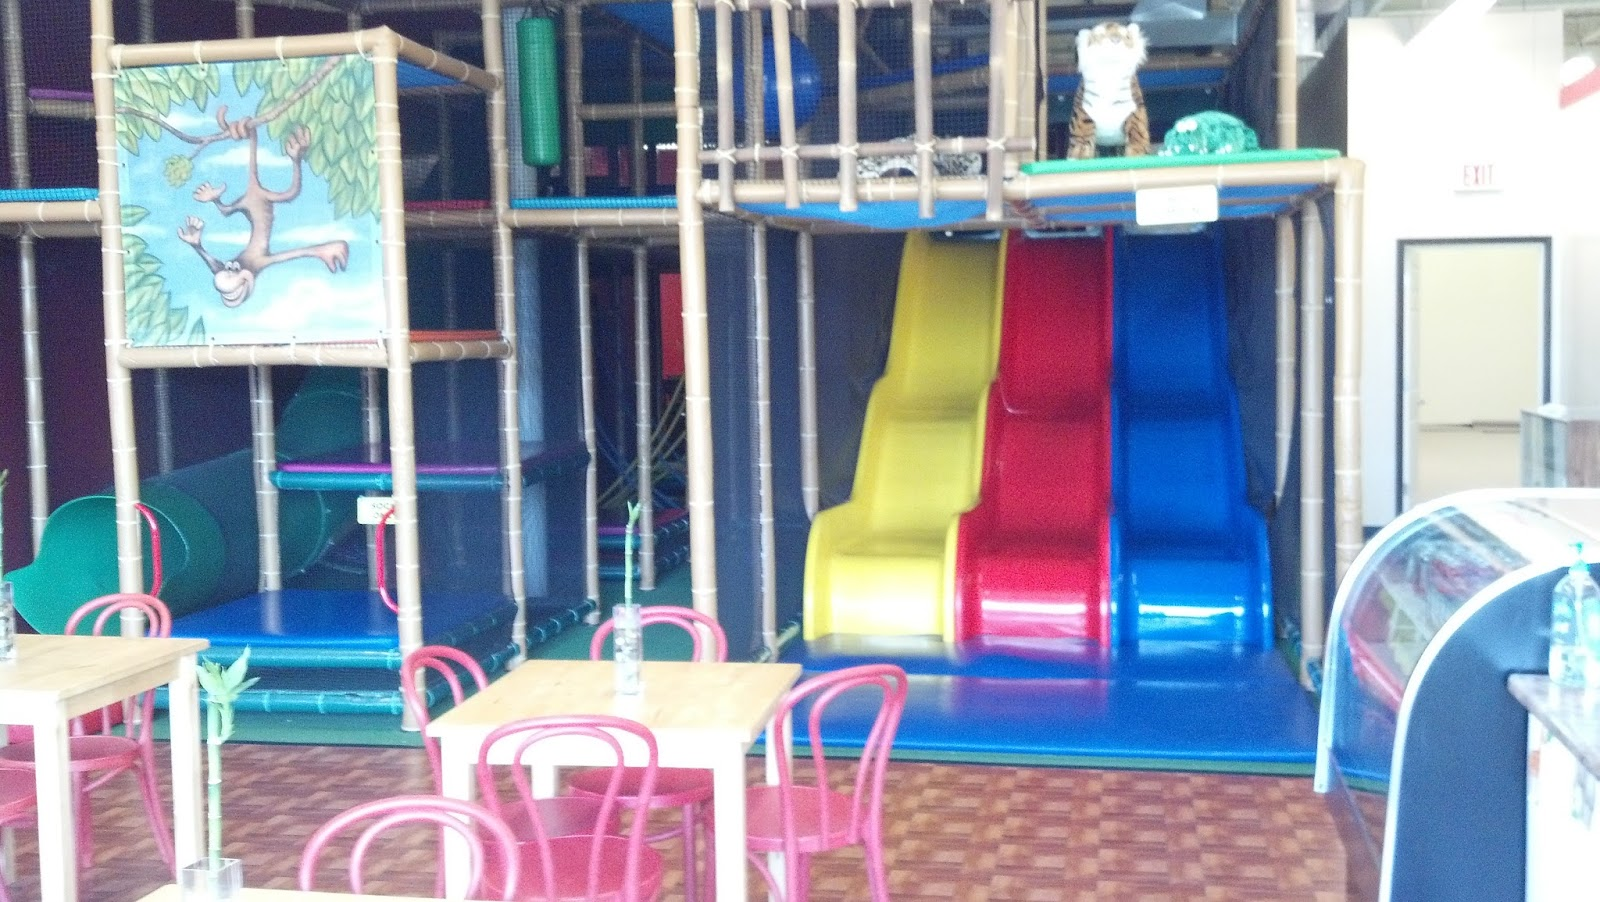 The jungle gym a new indoor play place in ypsilanti for Toddler play places